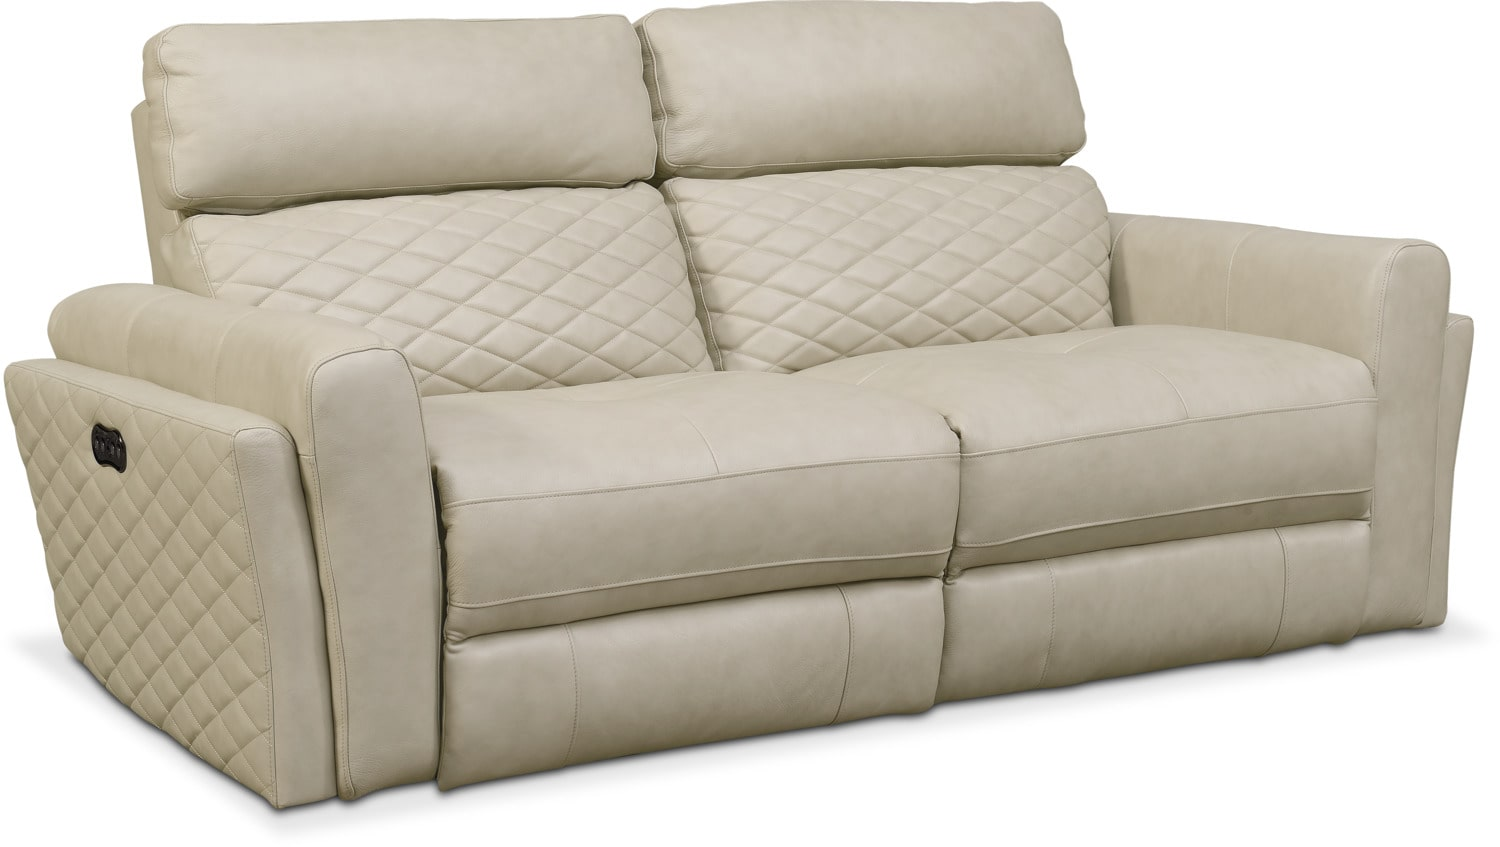 Living Room Furniture - Catalina 2-Piece Power Reclining Sofa - Cream